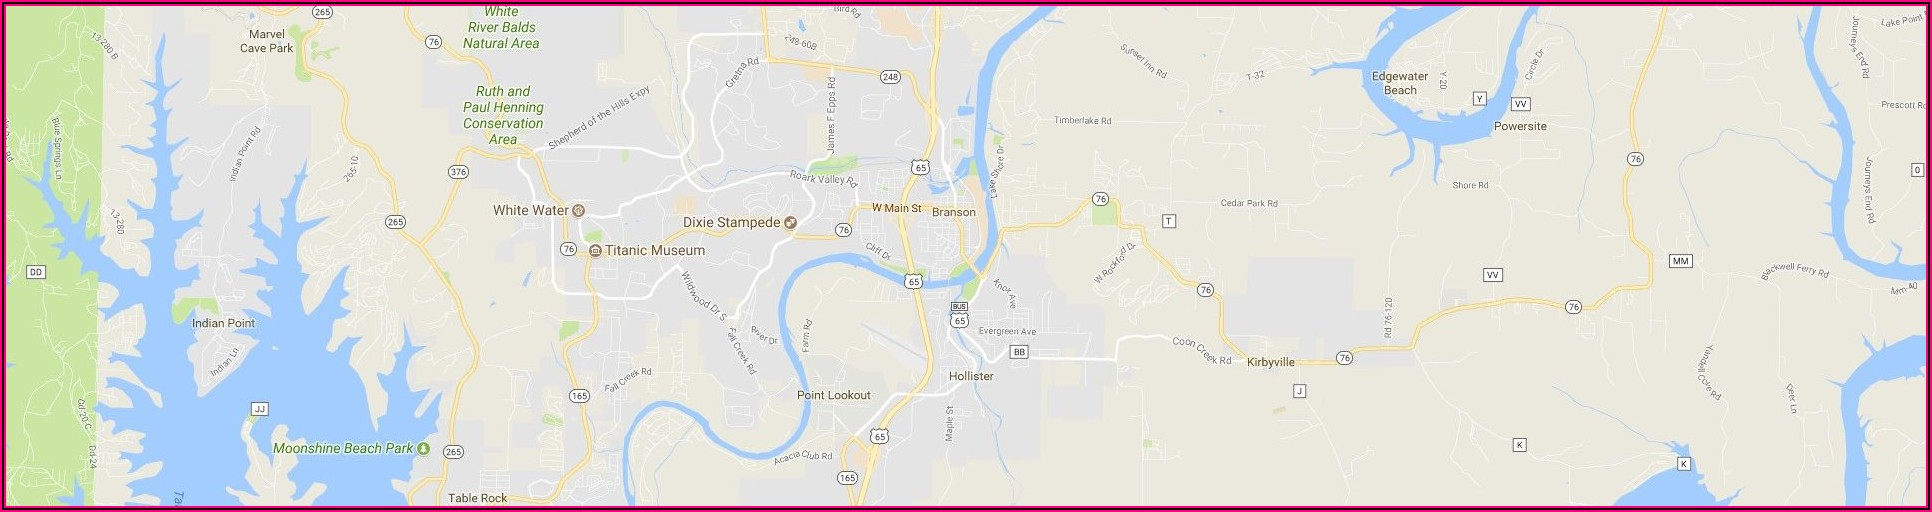 City Street Map Of Branson Mo